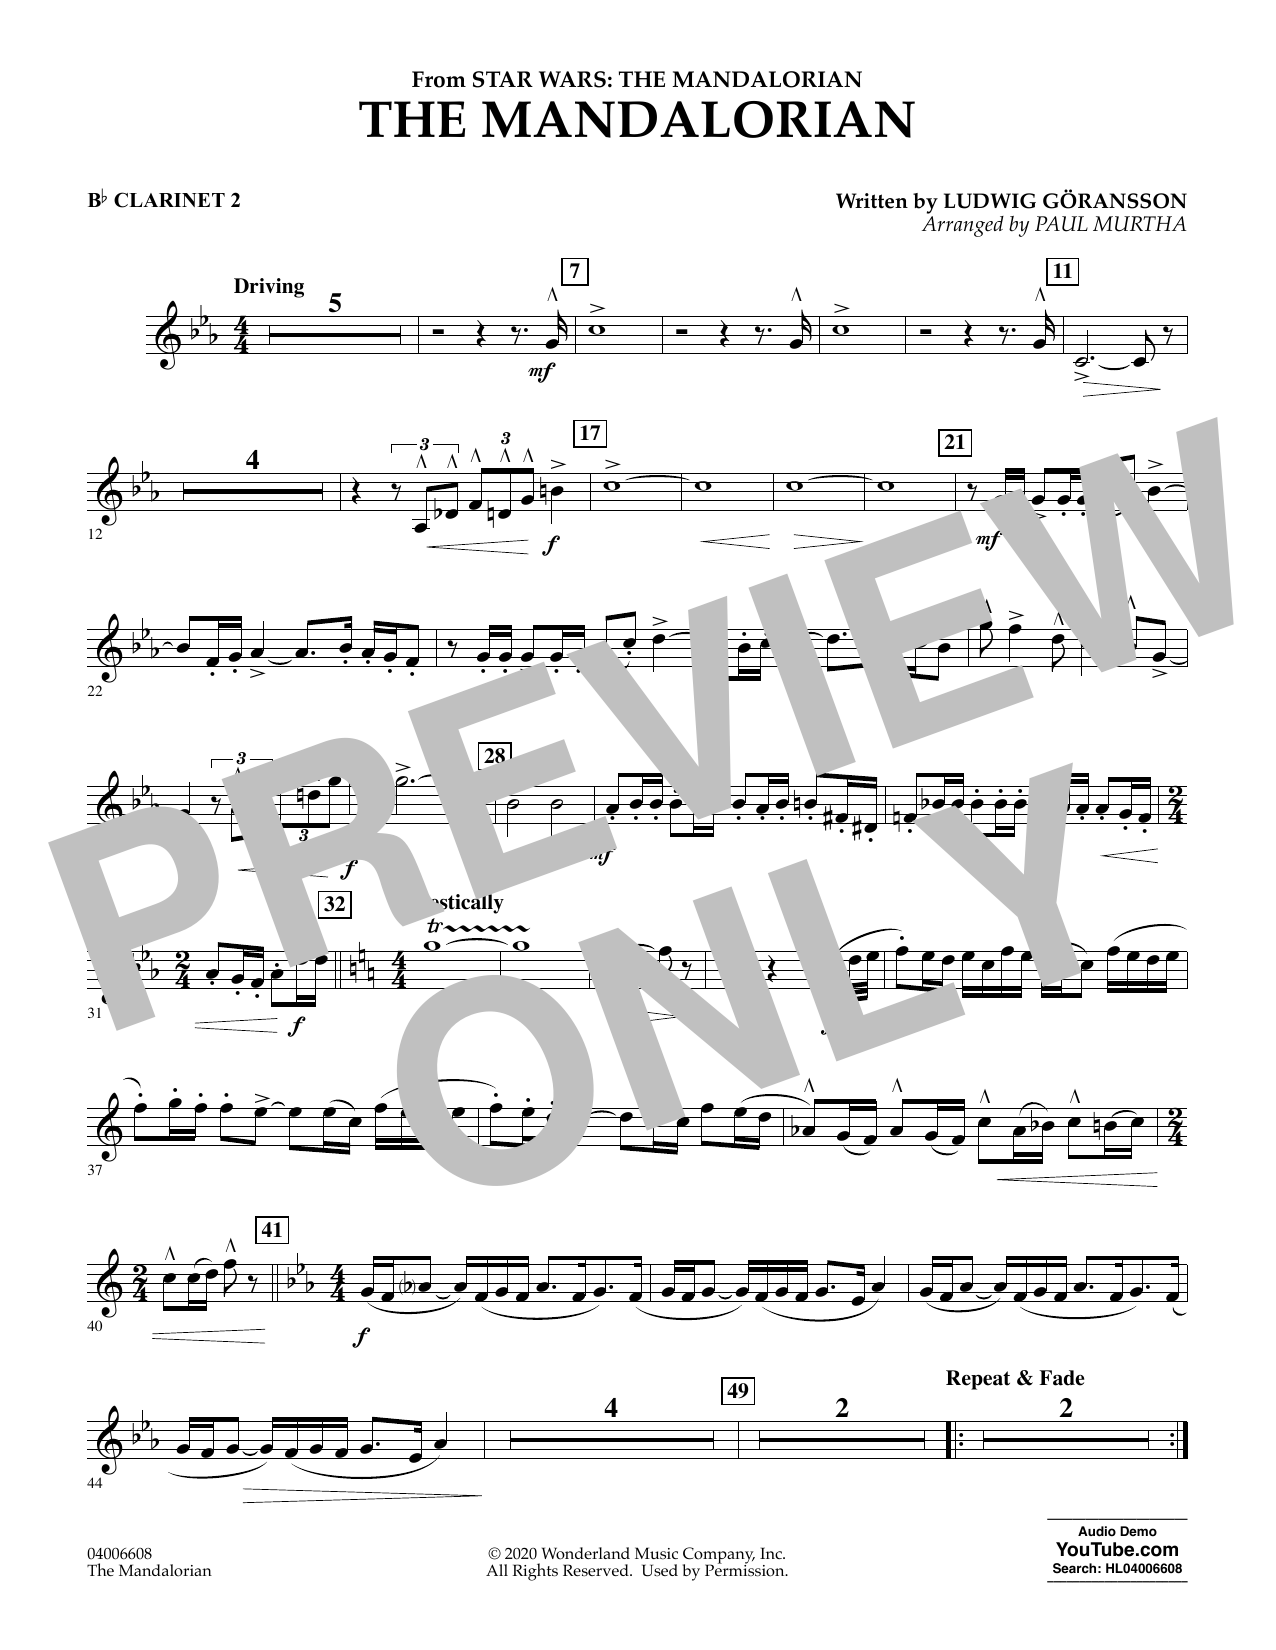 Ludwig Goransson The Mandalorian (from Star Wars: The Mandalorian) (arr. Paul Murtha) - Bb Clarinet 2 sheet music notes and chords. Download Printable PDF.